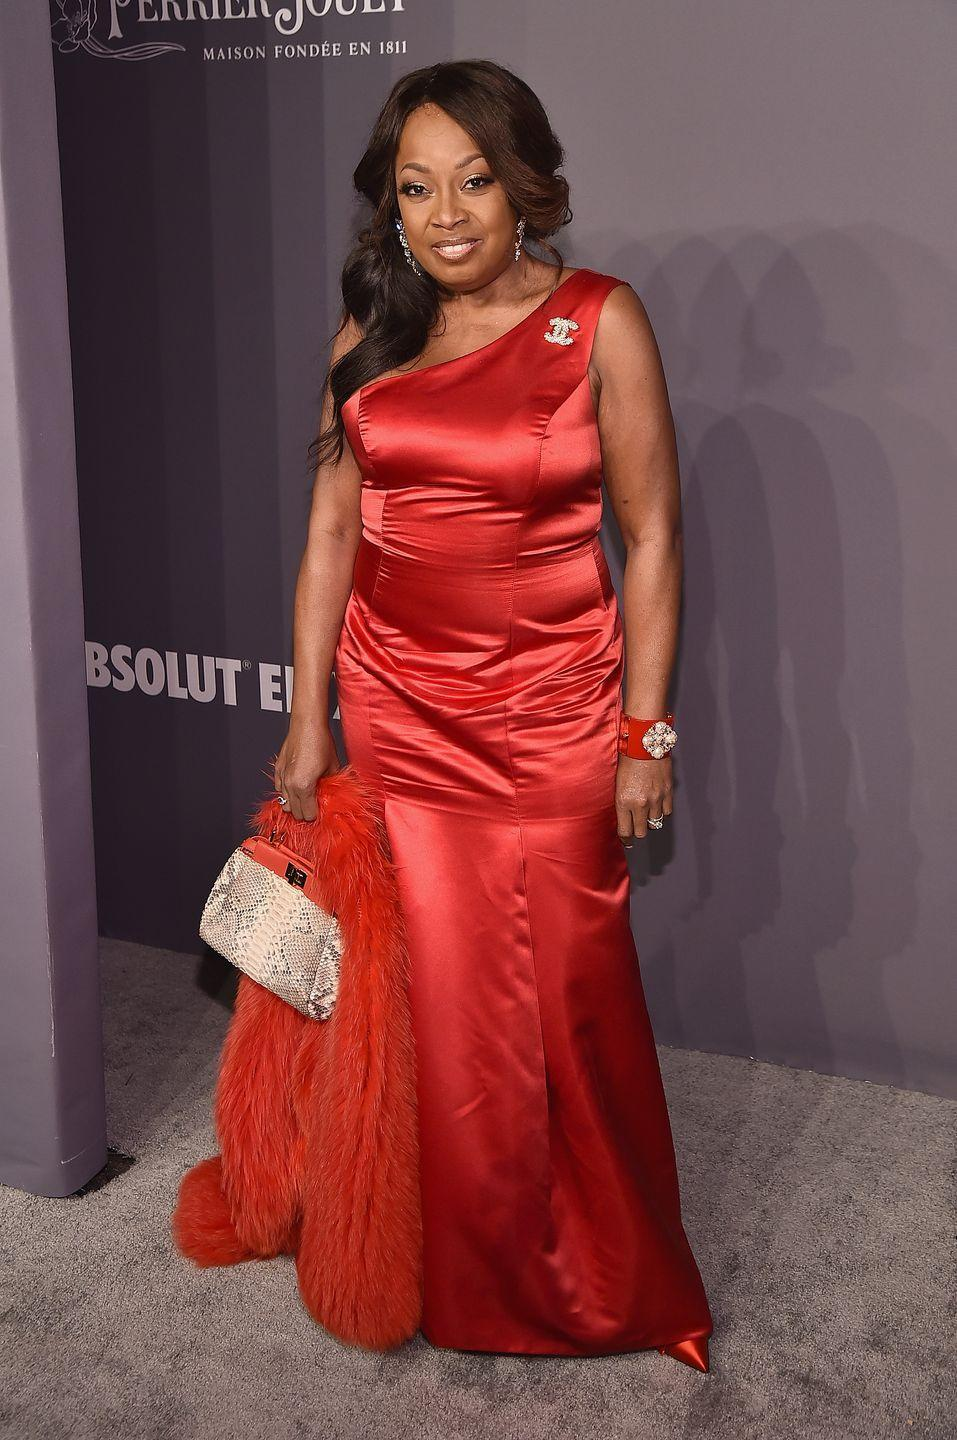 """<p>Star chose to keep the surgery to herself at first, but faced backlash when she lost 160 pounds without addressing her fans with an explanation. In 2012, she opened up about it to Matt Lauer on the <em><a href=""""https://www.today.com/health/star-jones-her-weight-loss-i-wasnt-plus-size-i-1C9381962"""" rel=""""nofollow noopener"""" target=""""_blank"""" data-ylk=""""slk:Today Show"""" class=""""link rapid-noclick-resp"""">Today Show</a></em>: """"It really ticked them off. Because I was so public with all other aspects of my life I think the audience felt betrayed in some way. And I completely understand that. The reason I say I don't regret that, Matt, is it really worked for me. It allowed me to get emotionally safe and secure."""" </p>"""